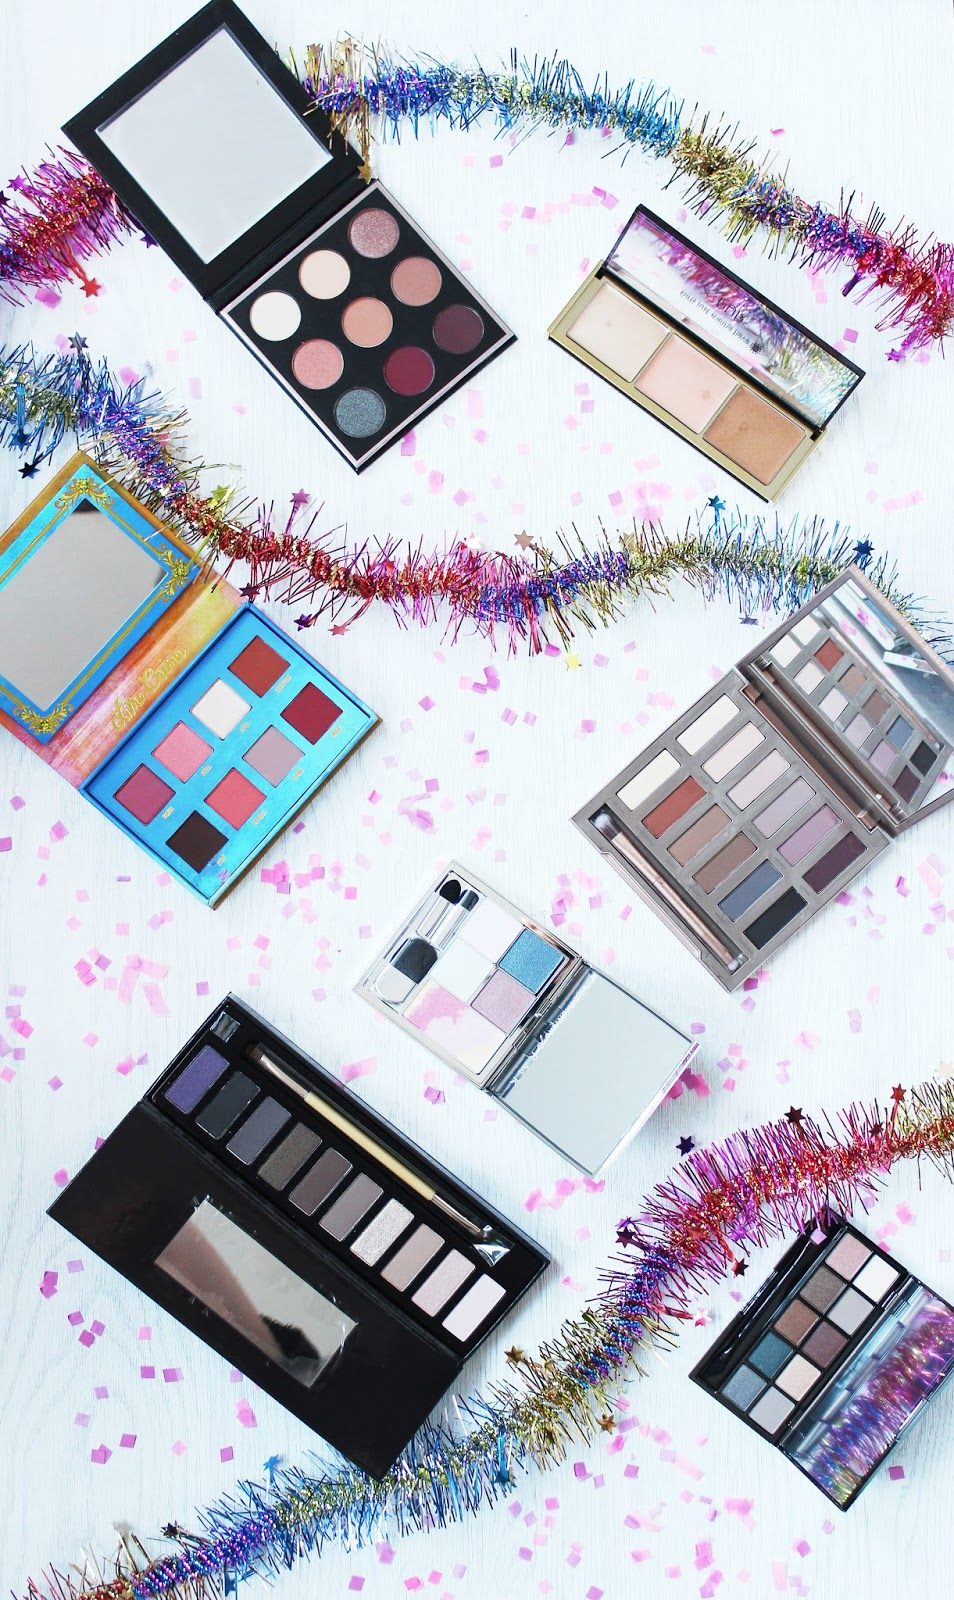 7 must have christmas palettes from Clarins, Autograph, Lime Crime, Manny MUA, Makeup Geek, Urban Decay, Pur